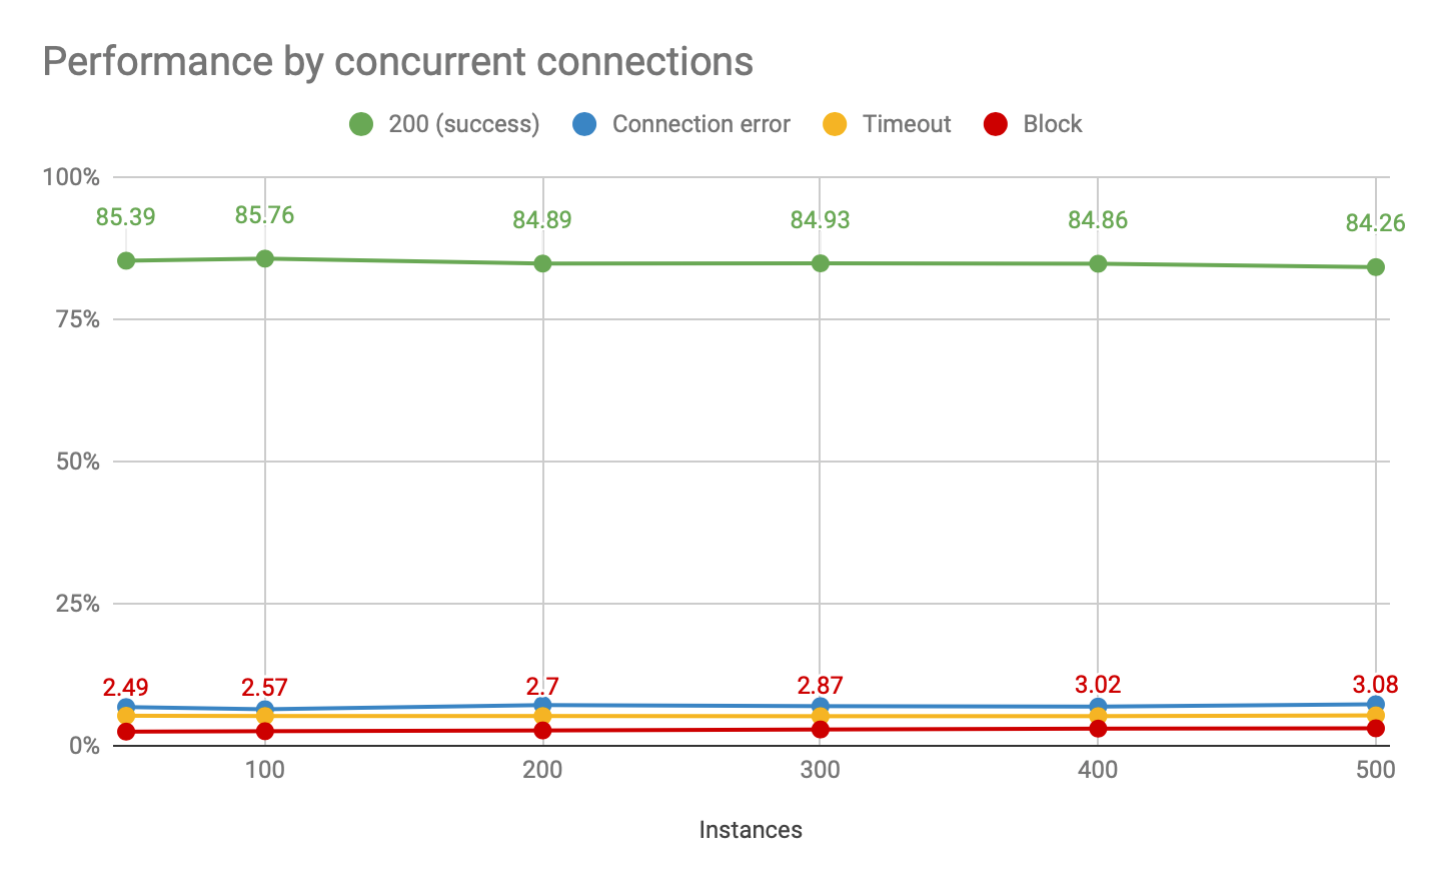 Oxylabs residential proxies performance by concurrent connections